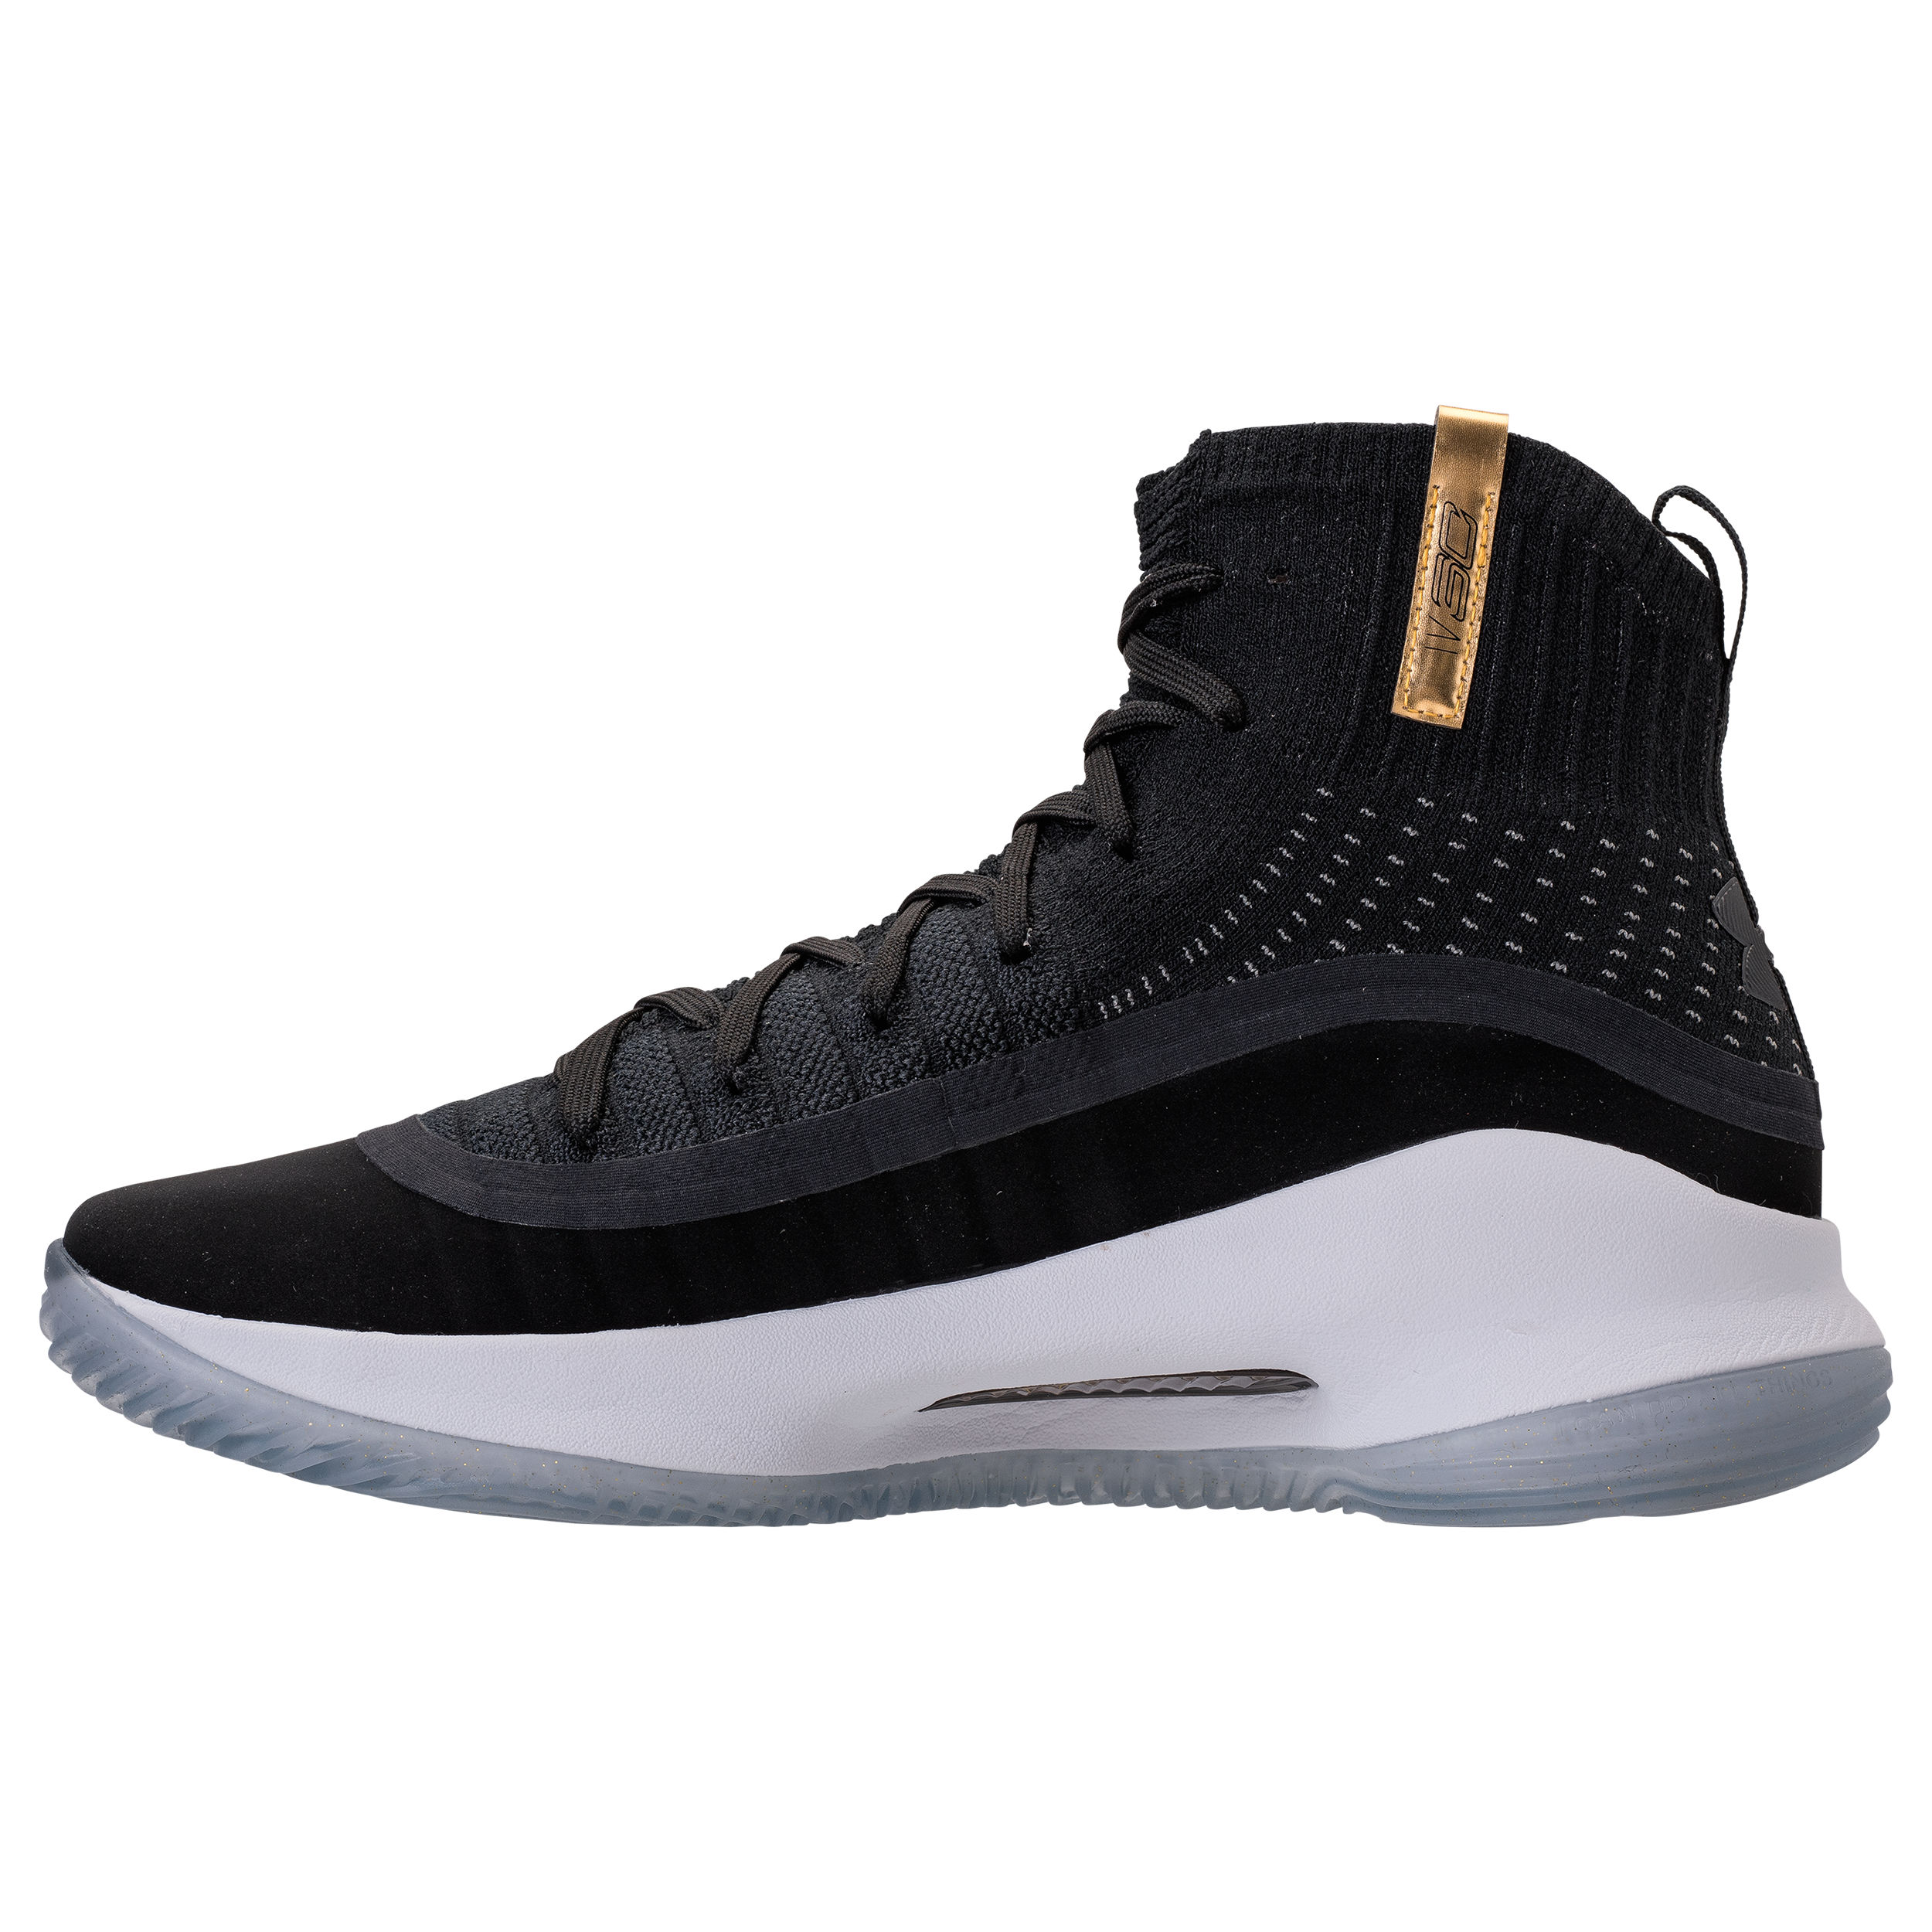 Under armour curry 4 black gold 3